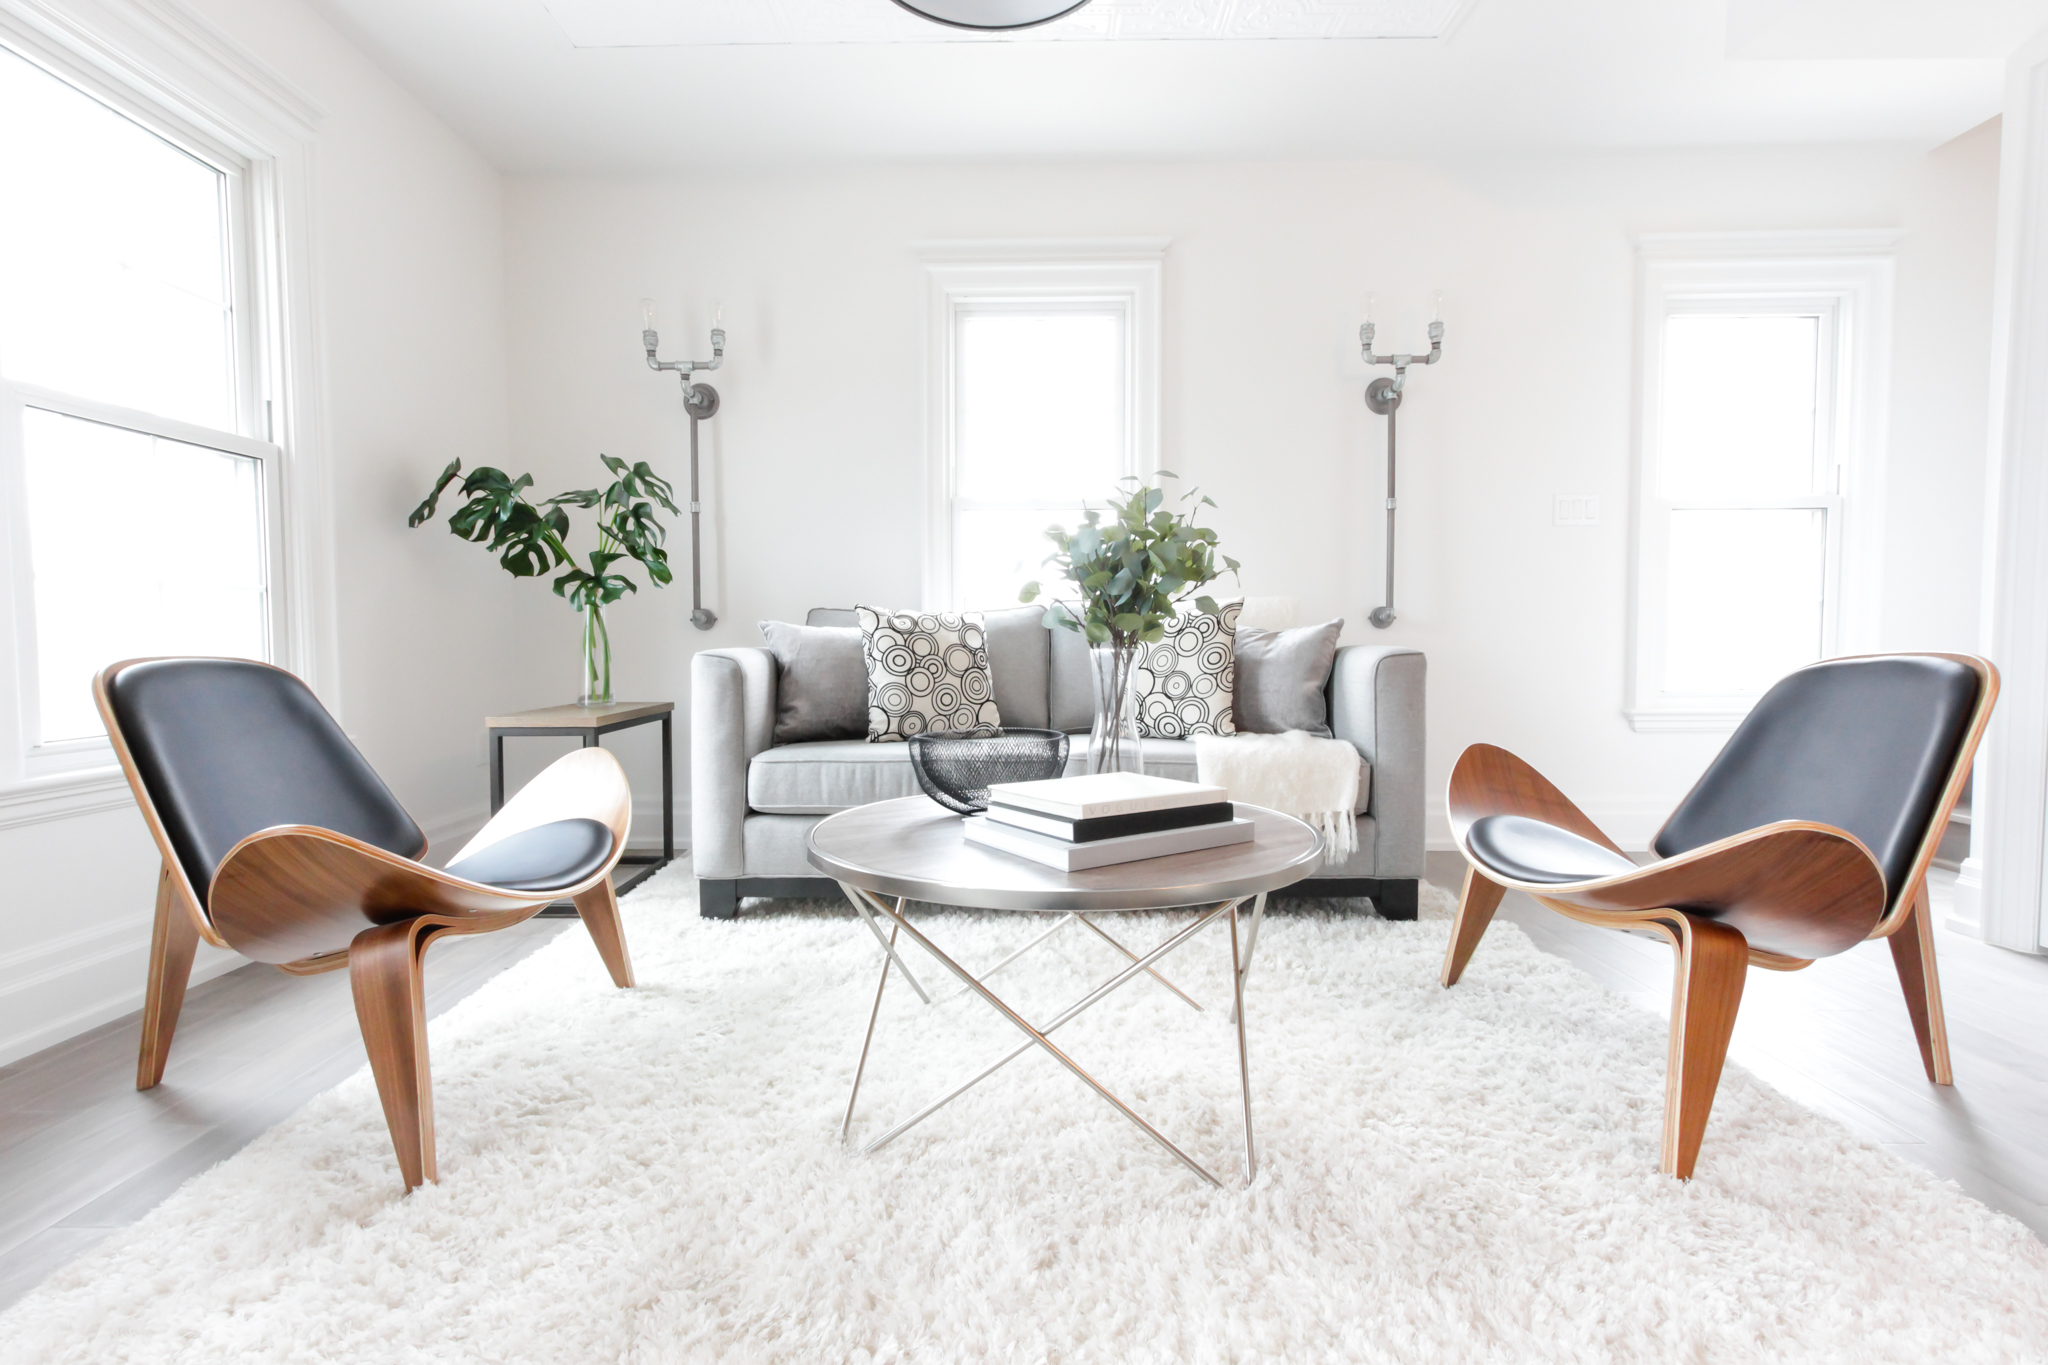 Living Room Home Staging in Barrie. Cool modern chairs add style and sophistication to this home for sale